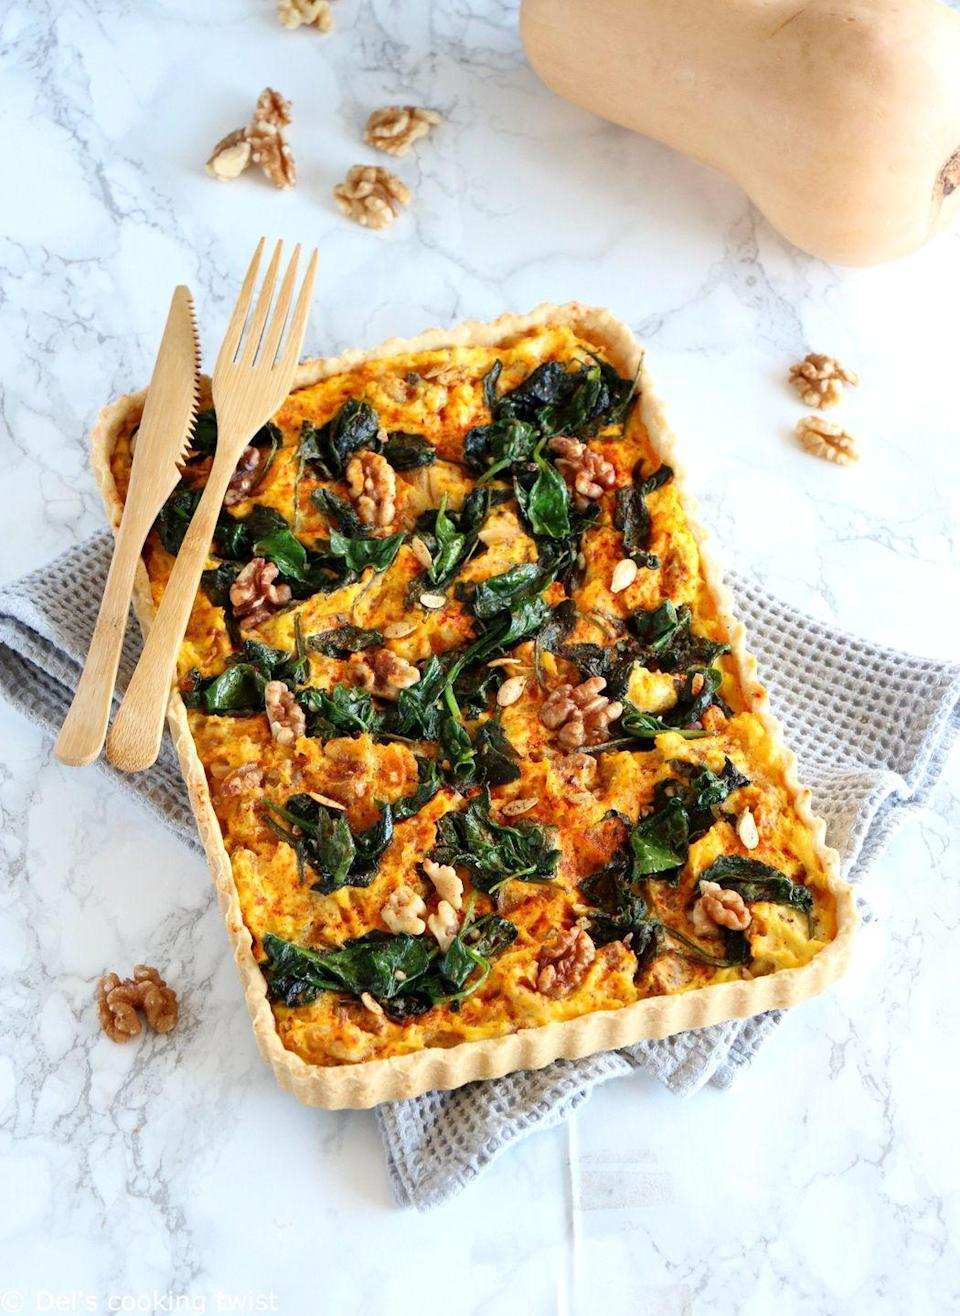 """<p>It's a combination we rarely see, but when we <em>do</em> see it, we're head-over-heels: pumpkin and goat cheese! This impressive dish is a great option for any <a href=""""https://www.countryliving.com/food-drinks/g1557/christmas-brunch-menu/"""" rel=""""nofollow noopener"""" target=""""_blank"""" data-ylk=""""slk:holiday brunch"""" class=""""link rapid-noclick-resp"""">holiday brunch</a>.</p><p><strong>Get the recipe at <a href=""""https://www.delscookingtwist.com/pumpkin-spinach-and-goat-cheese-quiche/"""" rel=""""nofollow noopener"""" target=""""_blank"""" data-ylk=""""slk:Del's Cooking Twist"""" class=""""link rapid-noclick-resp"""">Del's Cooking Twist</a>.</strong></p><p><strong><a class=""""link rapid-noclick-resp"""" href=""""https://www.amazon.com/Good-Cook-Inch-Biscuit-Brownie/dp/B0026RHHYC/?tag=syn-yahoo-20&ascsubtag=%5Bartid%7C10050.g.619%5Bsrc%7Cyahoo-us"""" rel=""""nofollow noopener"""" target=""""_blank"""" data-ylk=""""slk:SHOP BAKING DISHES"""">SHOP BAKING DISHES</a><br></strong></p>"""